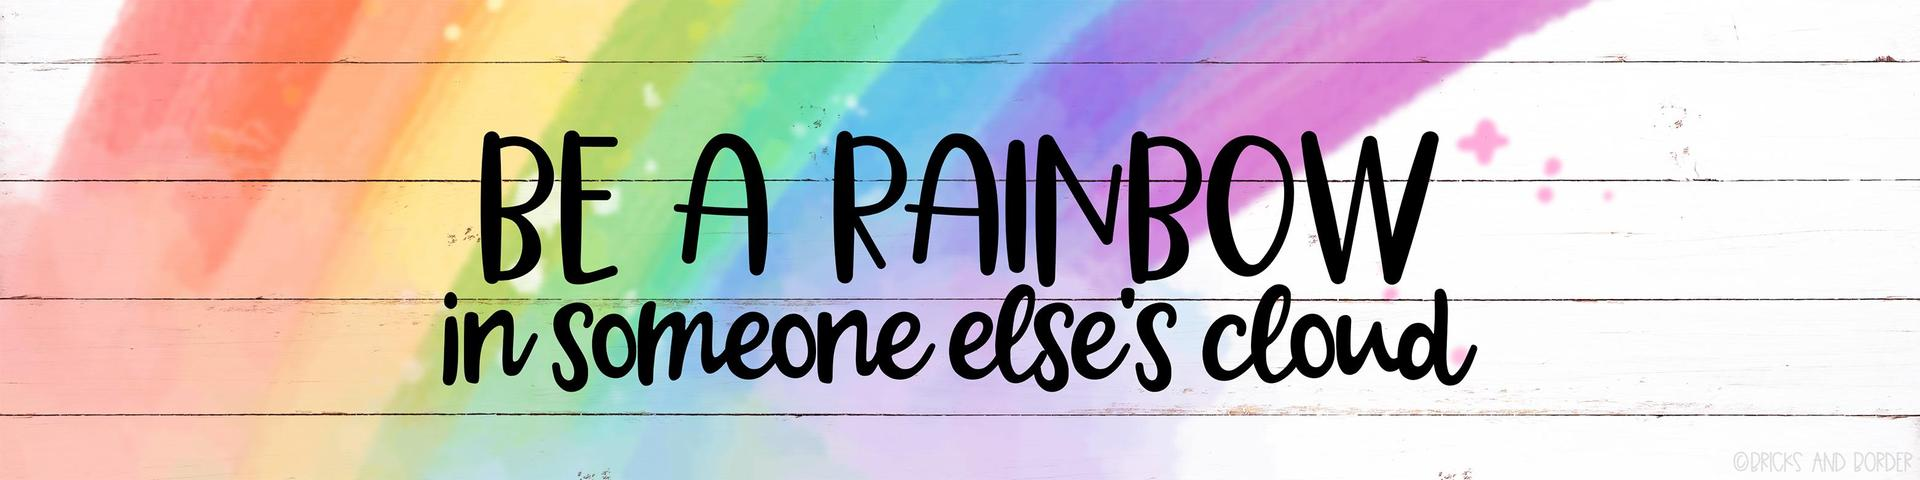 Be a rainbow in someone else's cloud logo